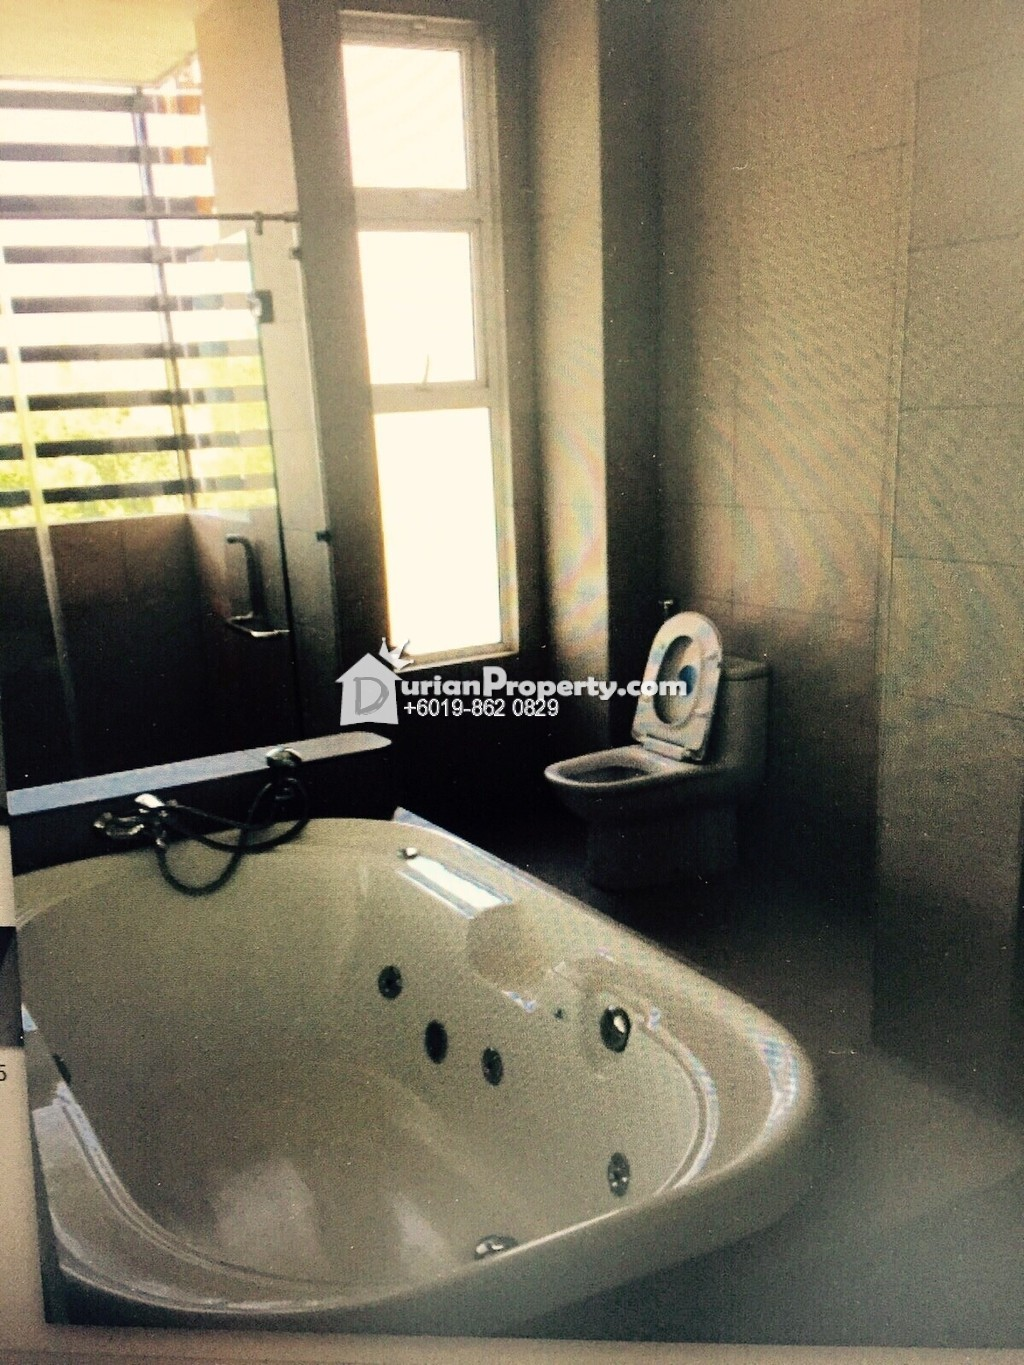 semi d for sale at dbanyan residency sutera harbour kota kinabalu - Bathroom Accessories Kota Kinabalu